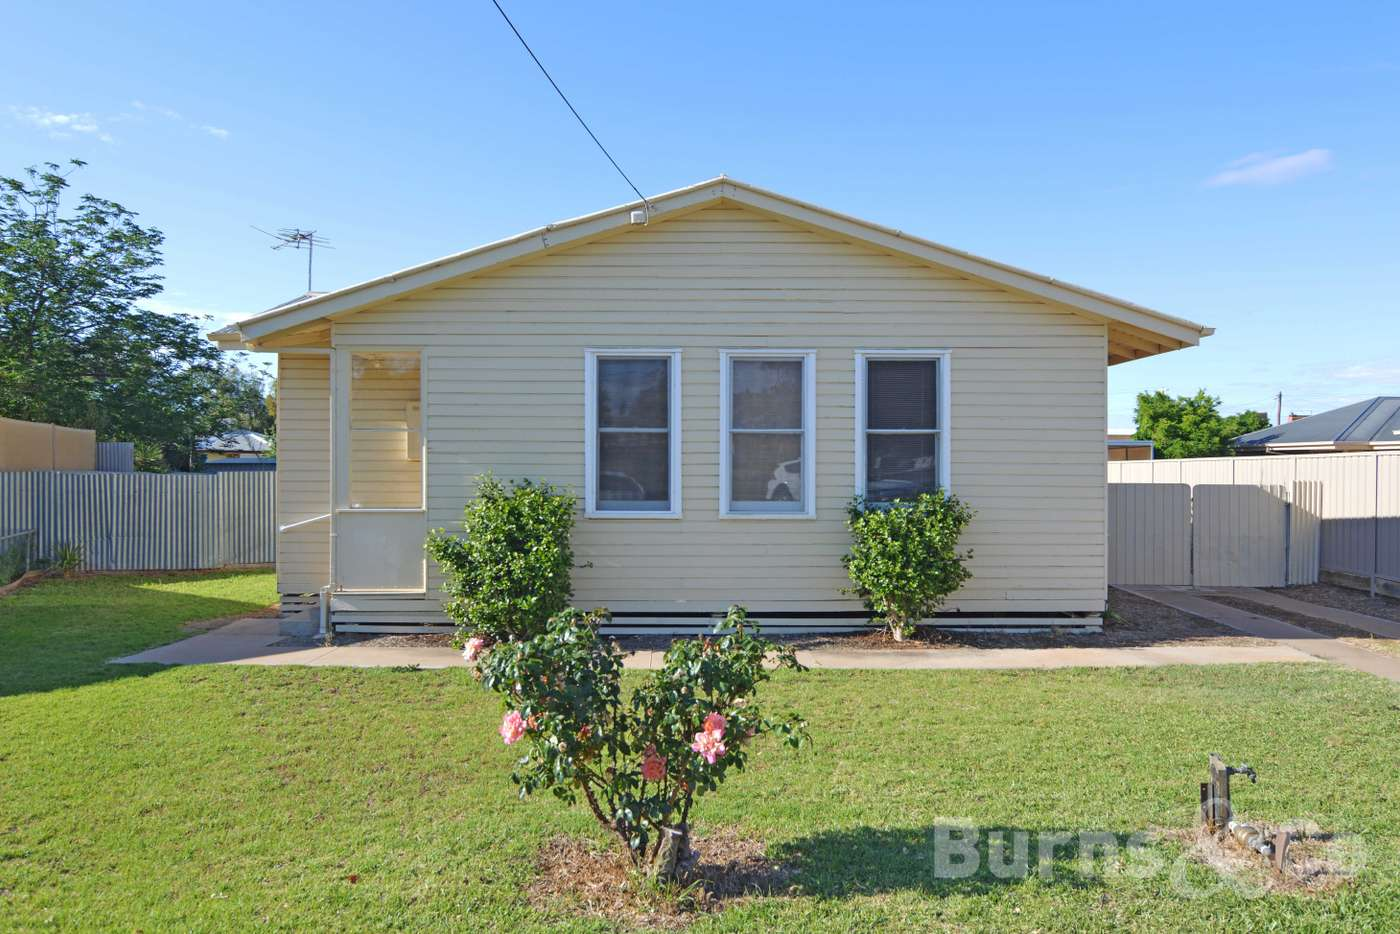 Main view of Homely house listing, 8 Chislett Crescent, Merbein VIC 3505